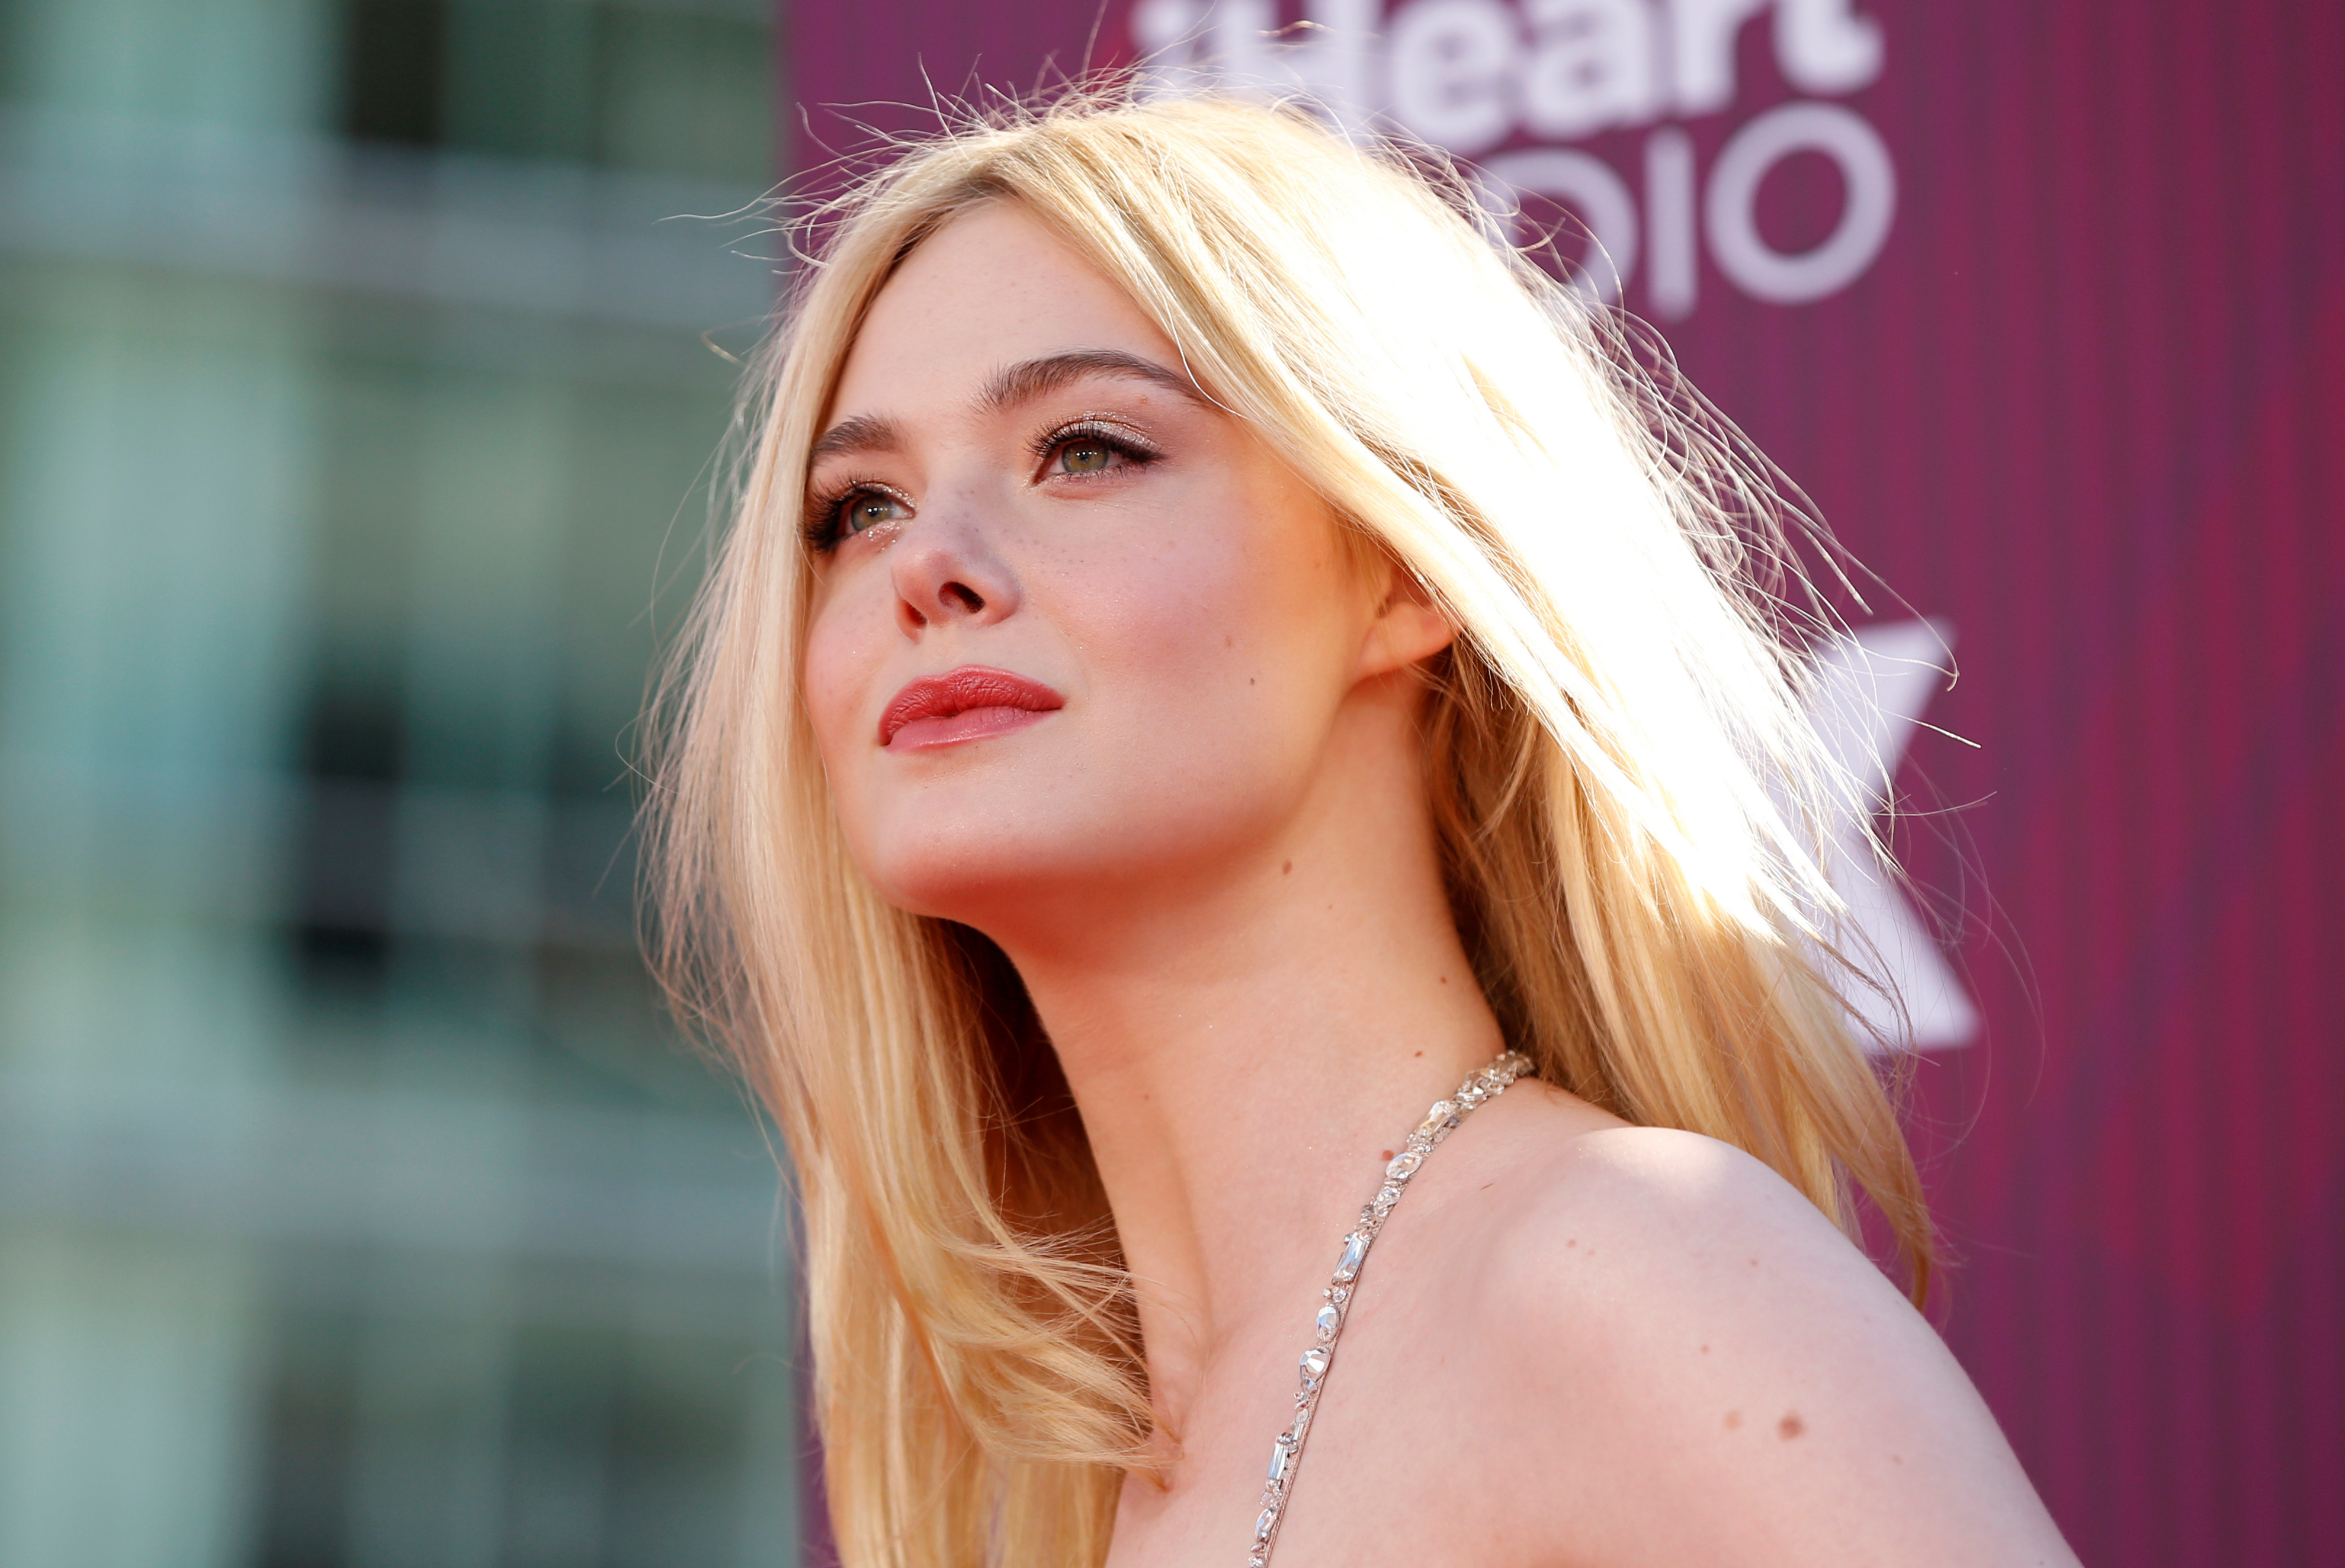 Actor Elle Fanning arrives for the iHeartRadio Music Awards in Los Angeles, California, March 14, 2019.